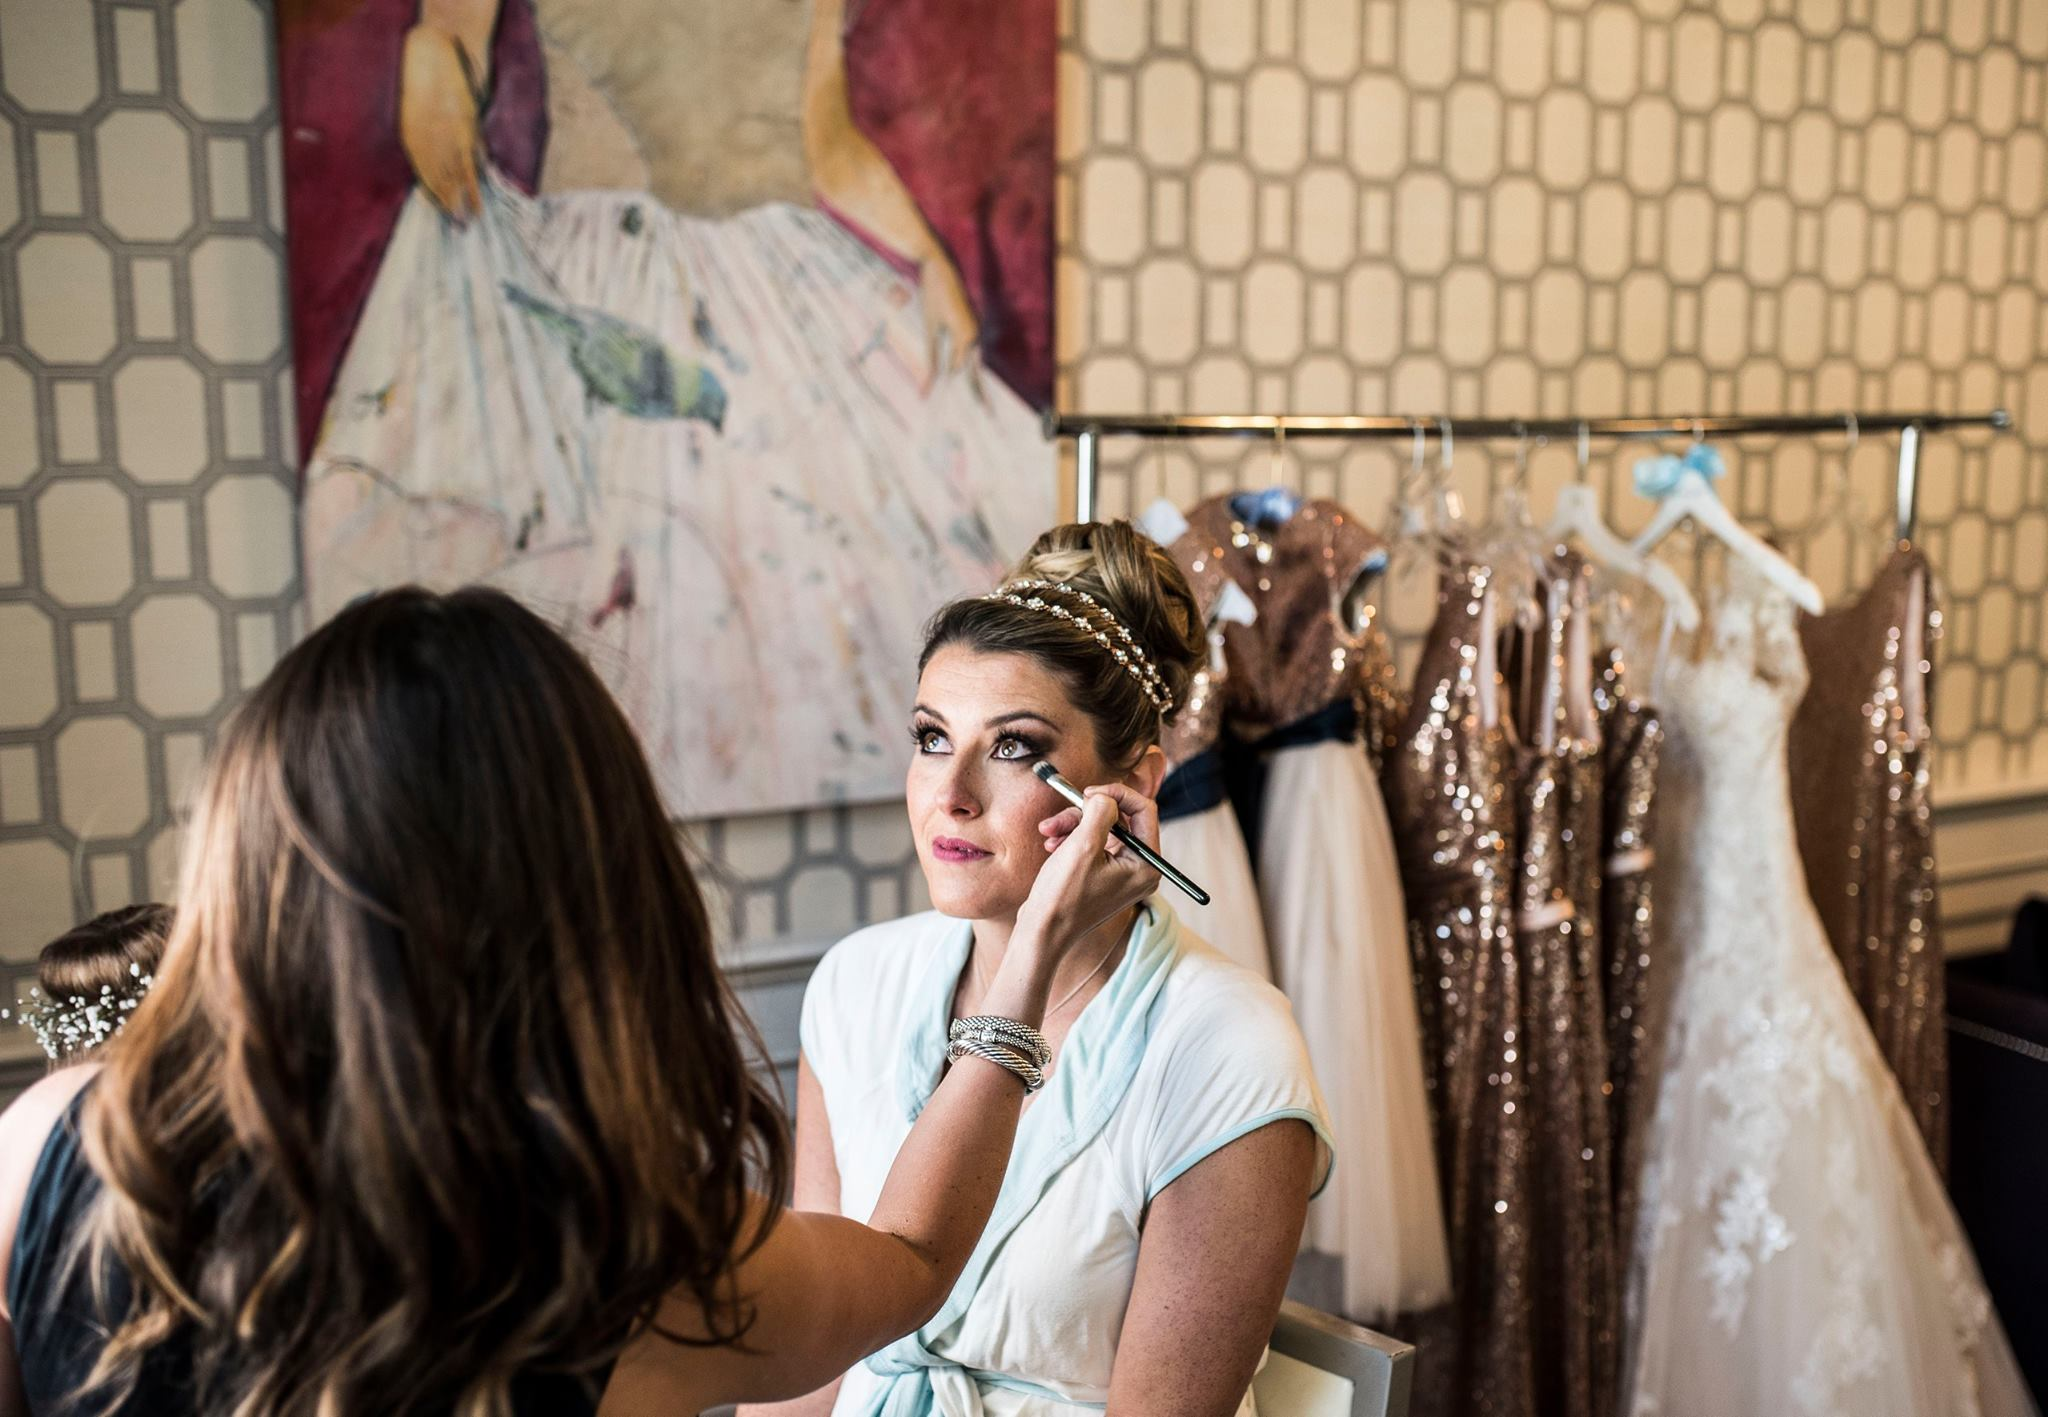 Nicolette Brycki applying makeup to a client for a wedding.